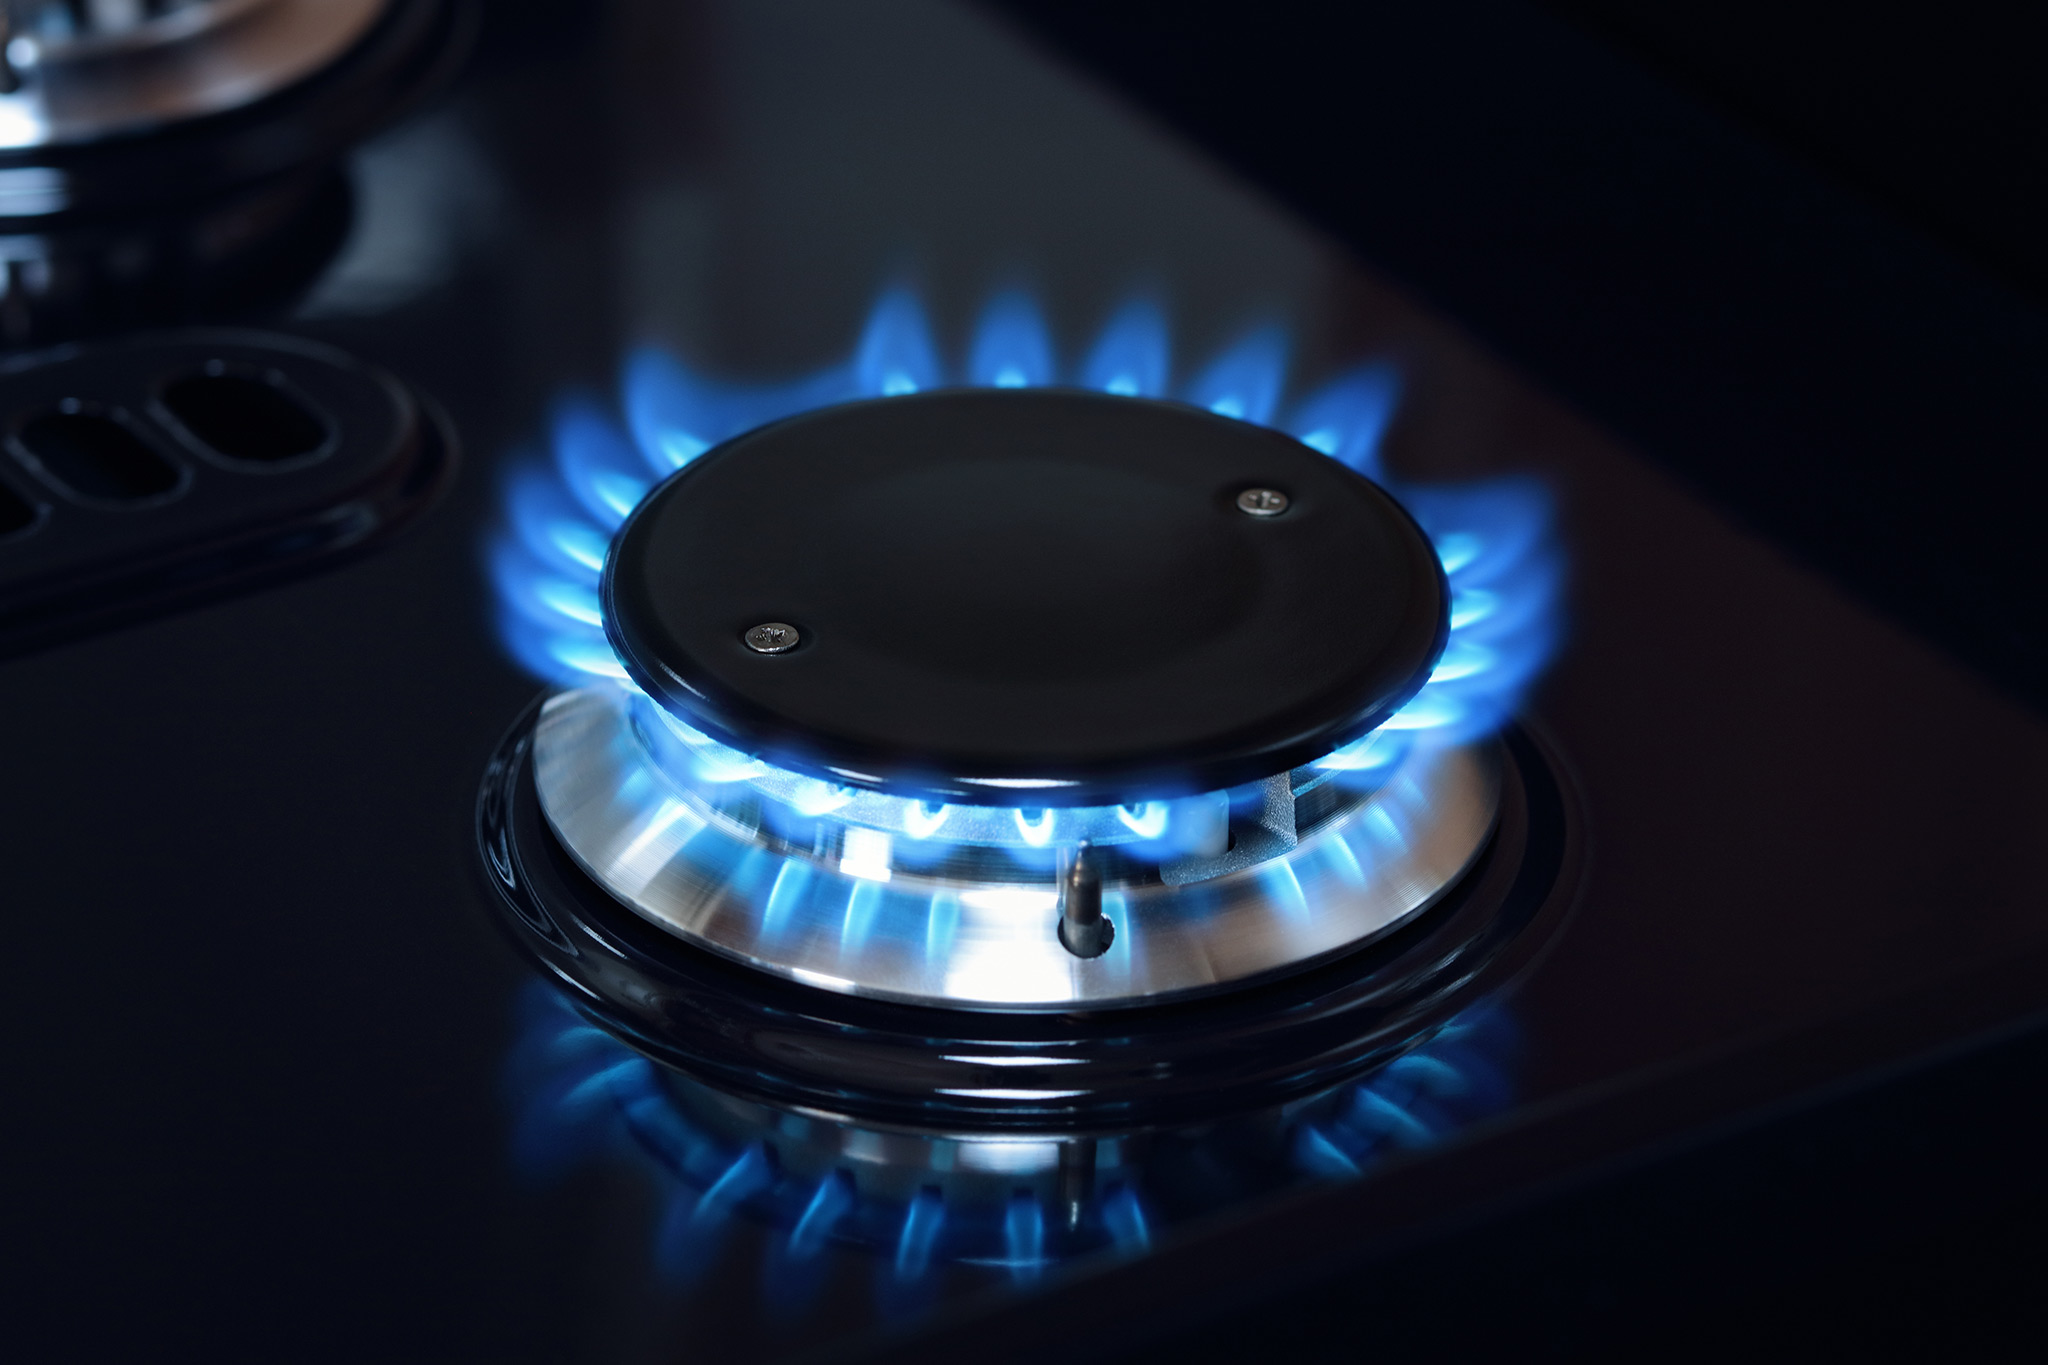 natural-gas-burner-flame-on-stove-F69BAUY